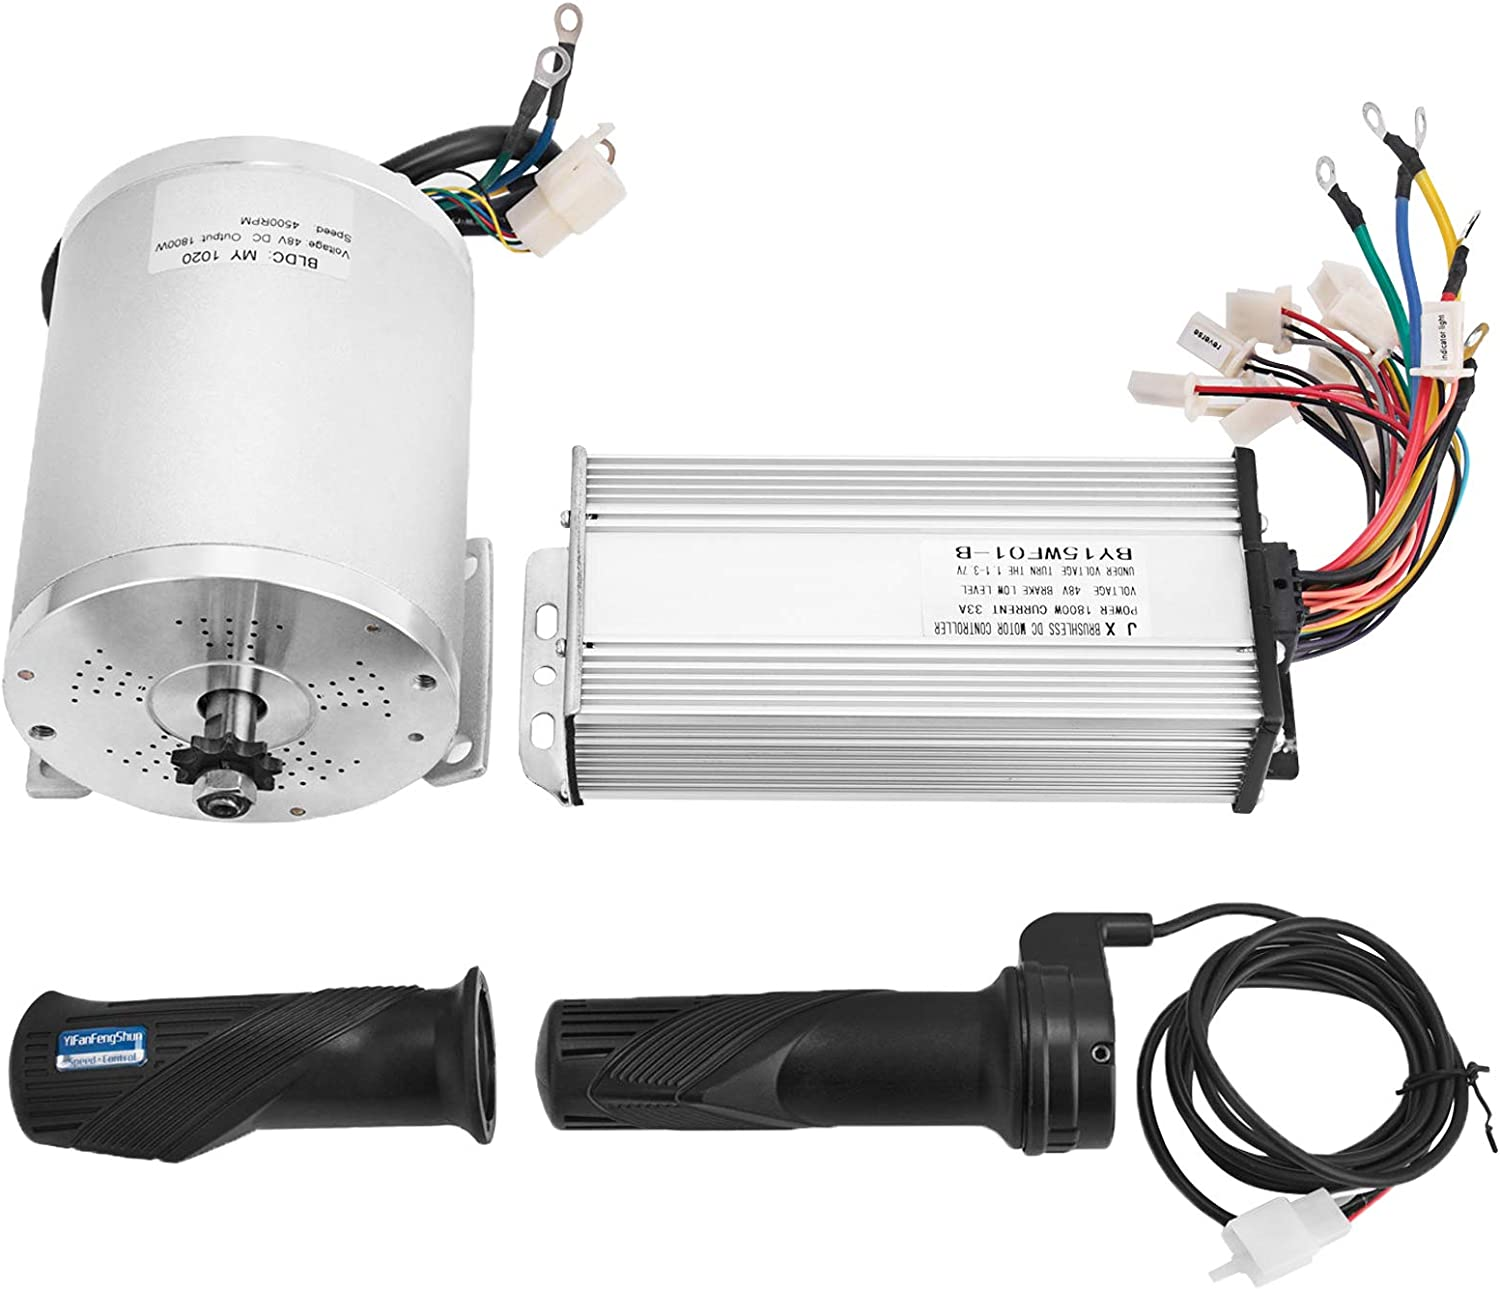 Mophorn 1800W Electric Brushless DC Motor Kit 48V High Speed Brushless Motor with 32A Speed Controller and Throttle Grip Kit for Go Karts E-bike Electric Throttle Motorcycle Scooter and More (1800W) - -